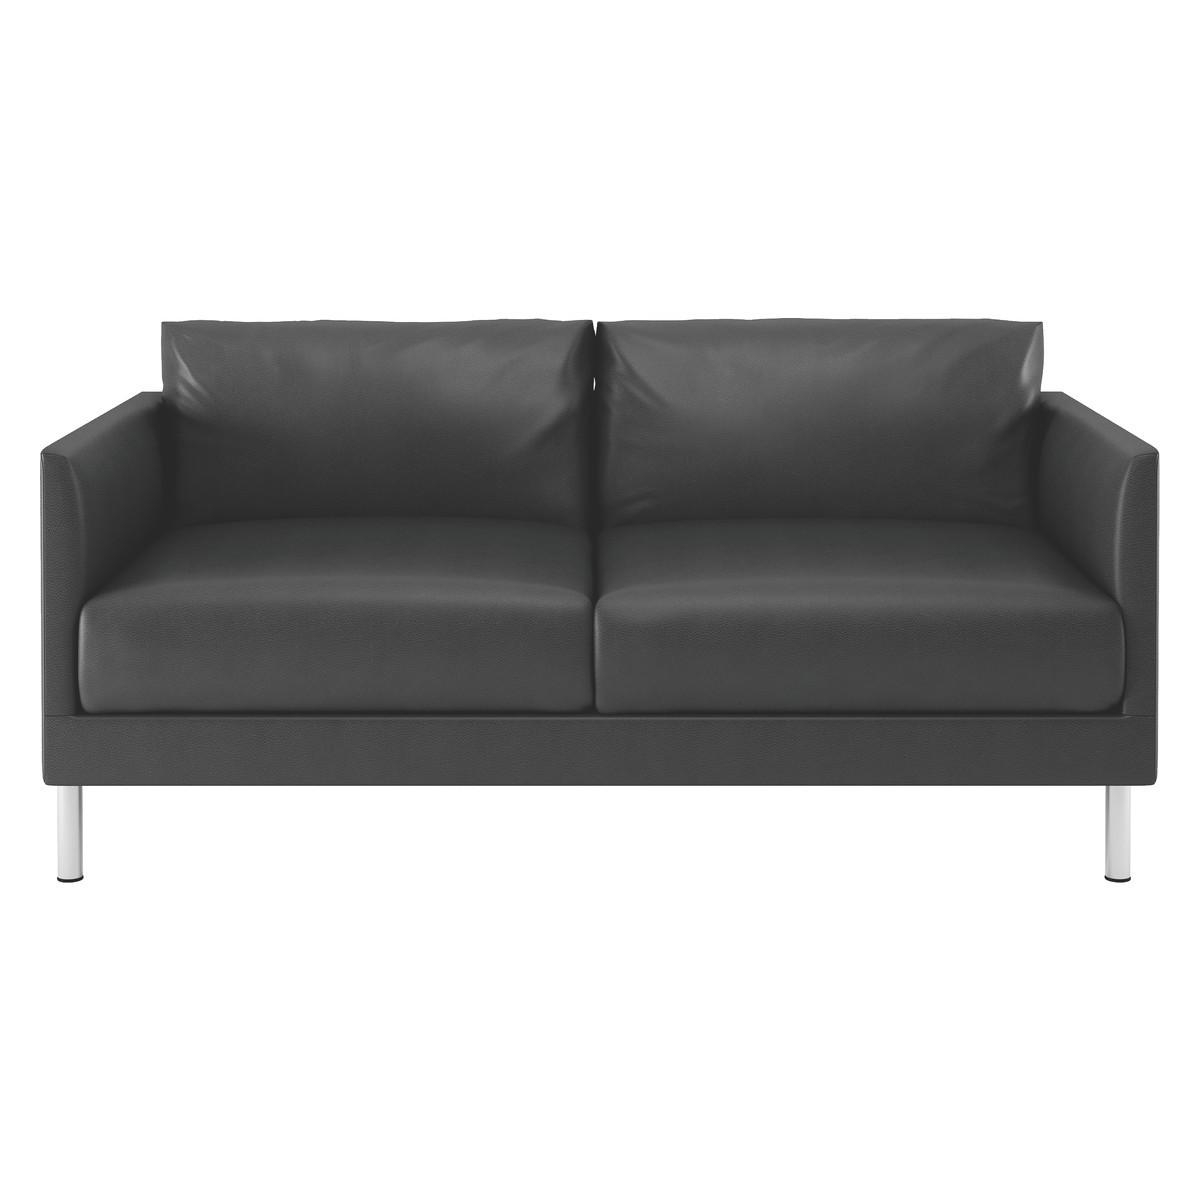 Hyde Black Leather 2 Seater Sofa, Metal Legs | Buy Now At Habitat Uk Regarding Black 2 Seater Sofas (View 6 of 20)